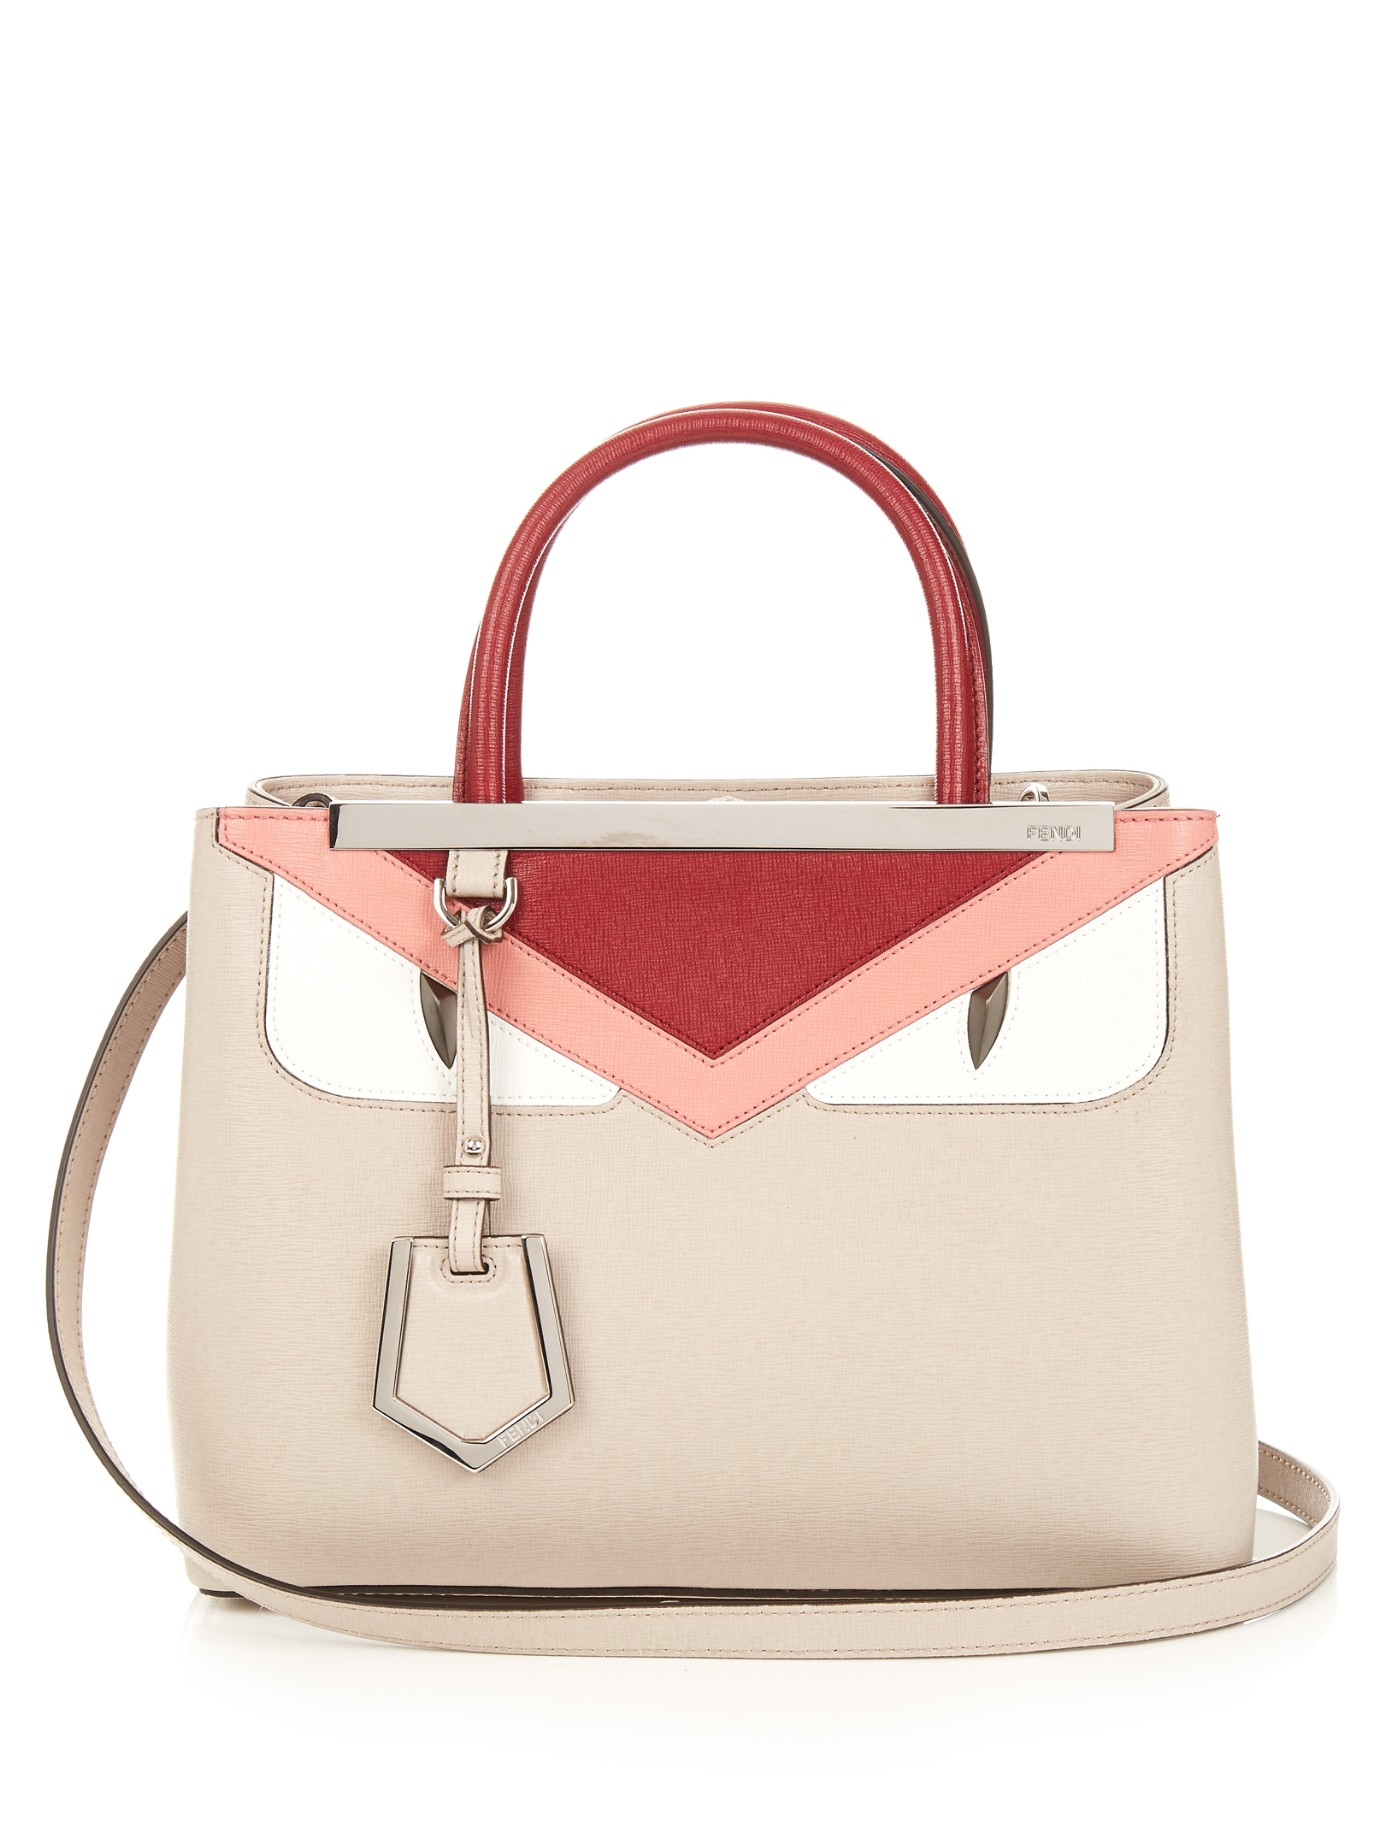 b4ddaf8116 Gallery. Previously sold at  MATCHESFASHION.COM · Women s Fendi 2jours ...